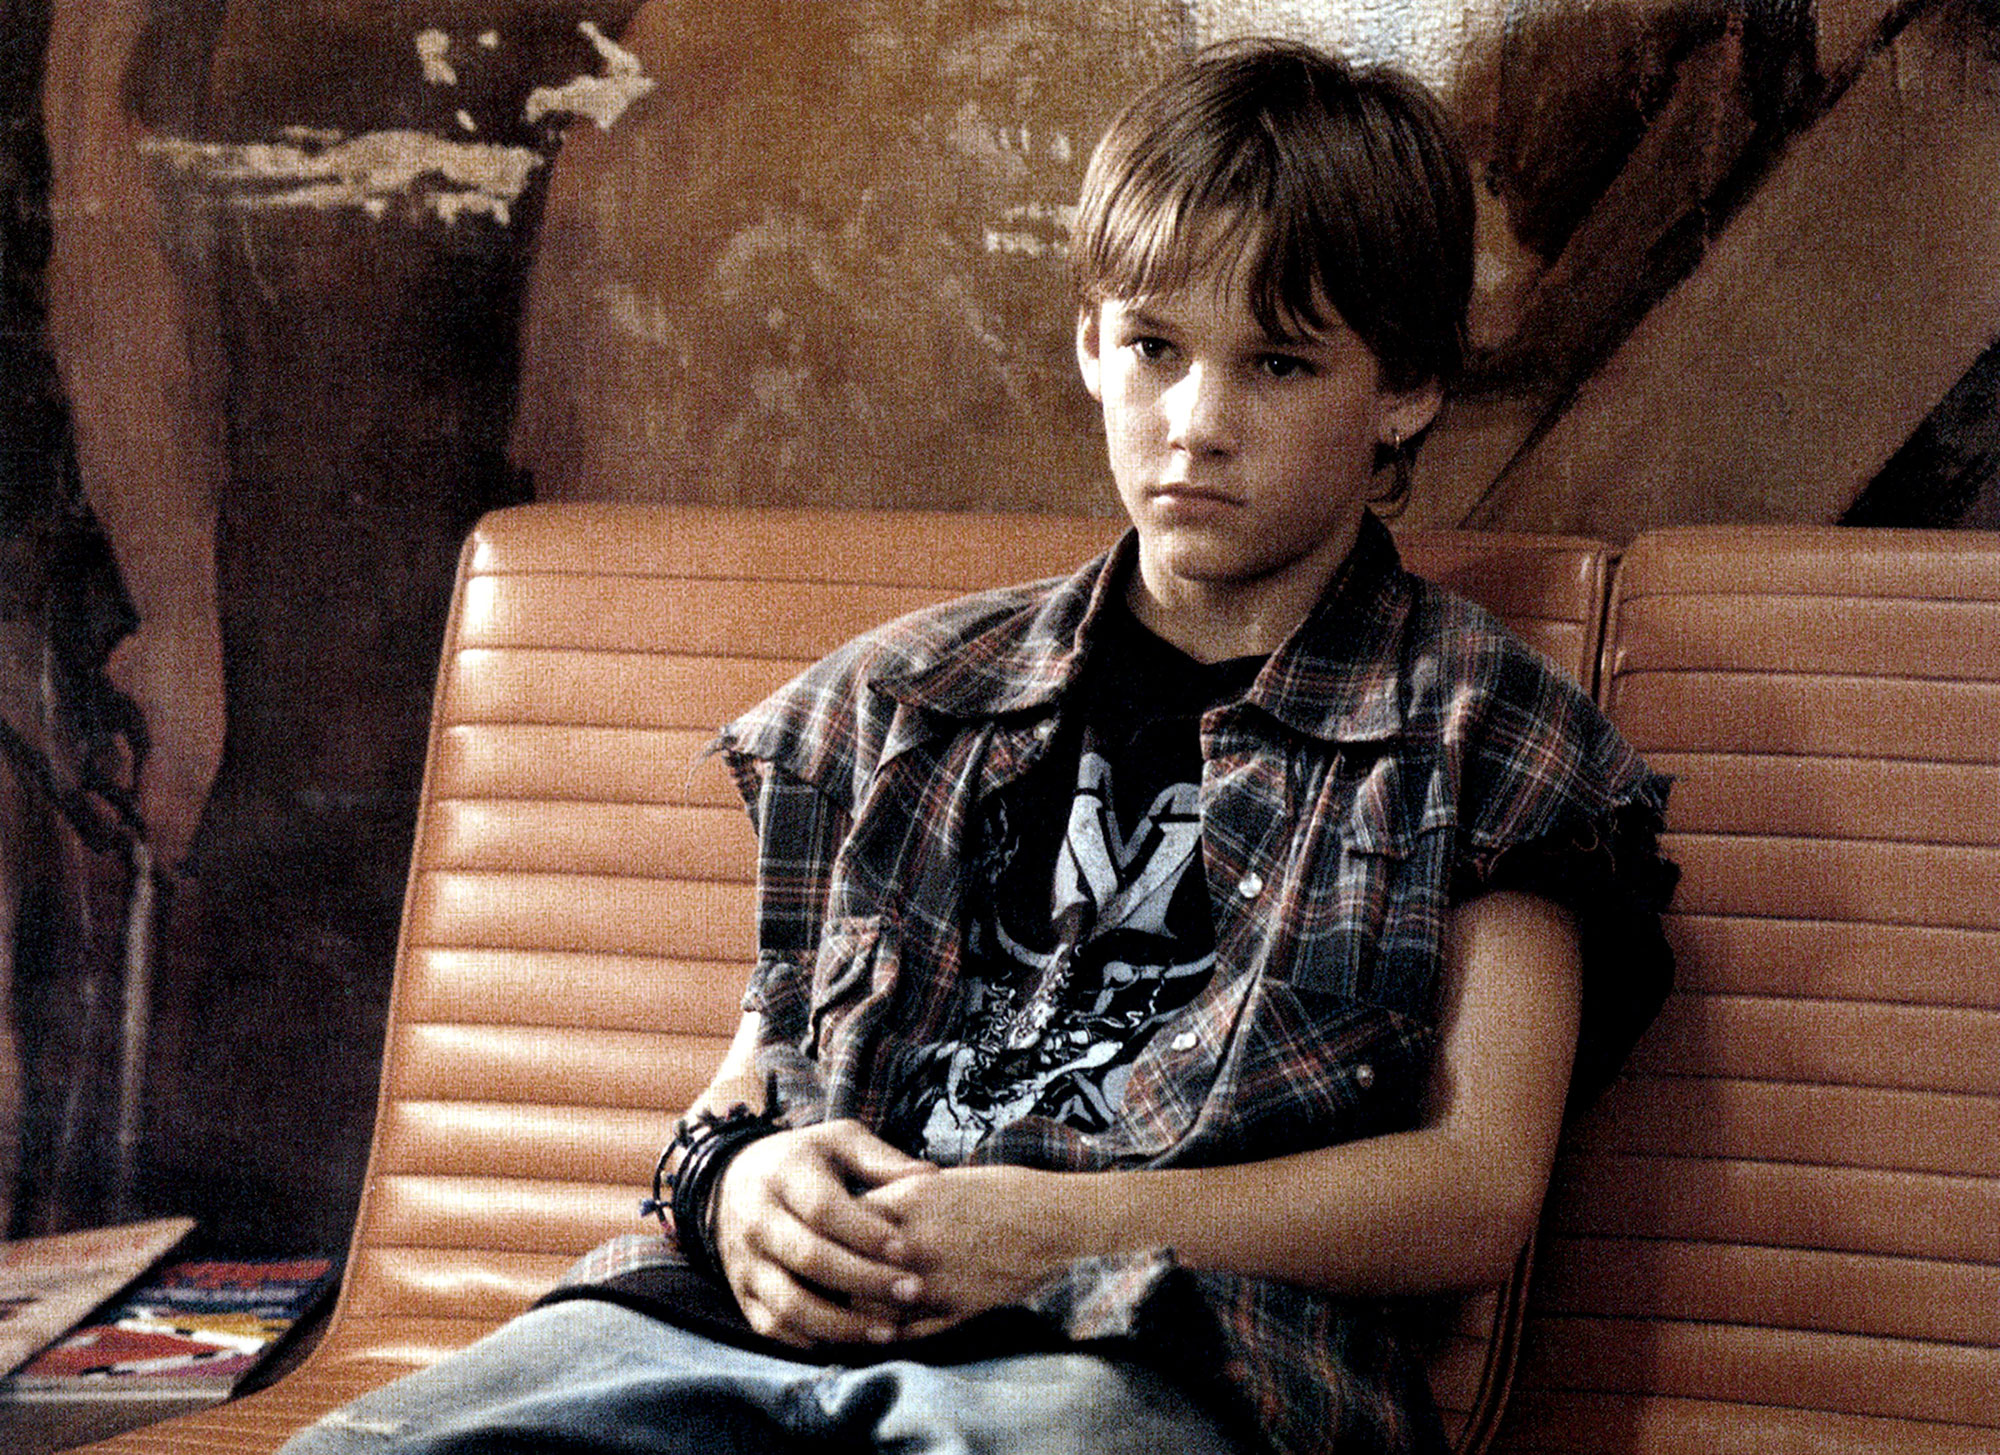 THE CLIENT, Brad Renfro, 1994, ©Warner Brothers/courtesy Everett Collection